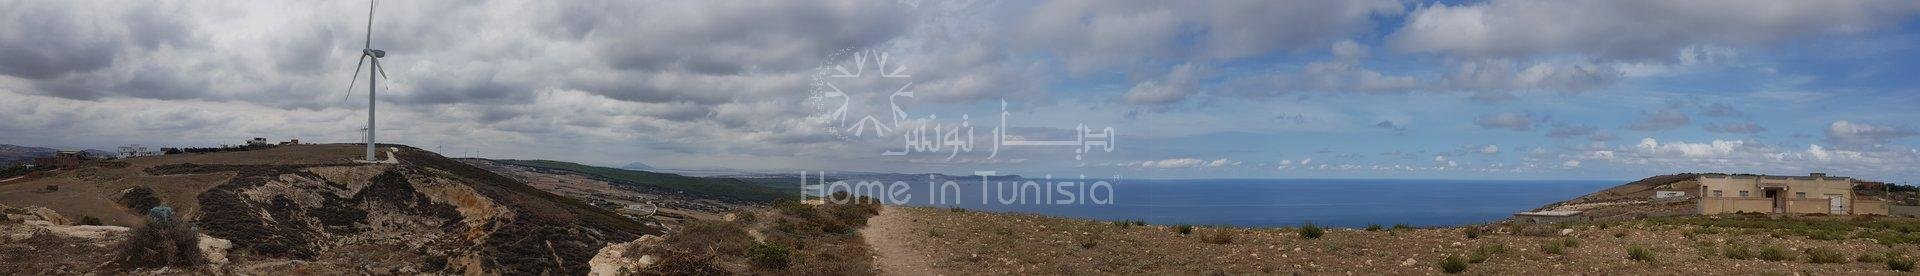 Sale Plot of land - Metline - Tunisia